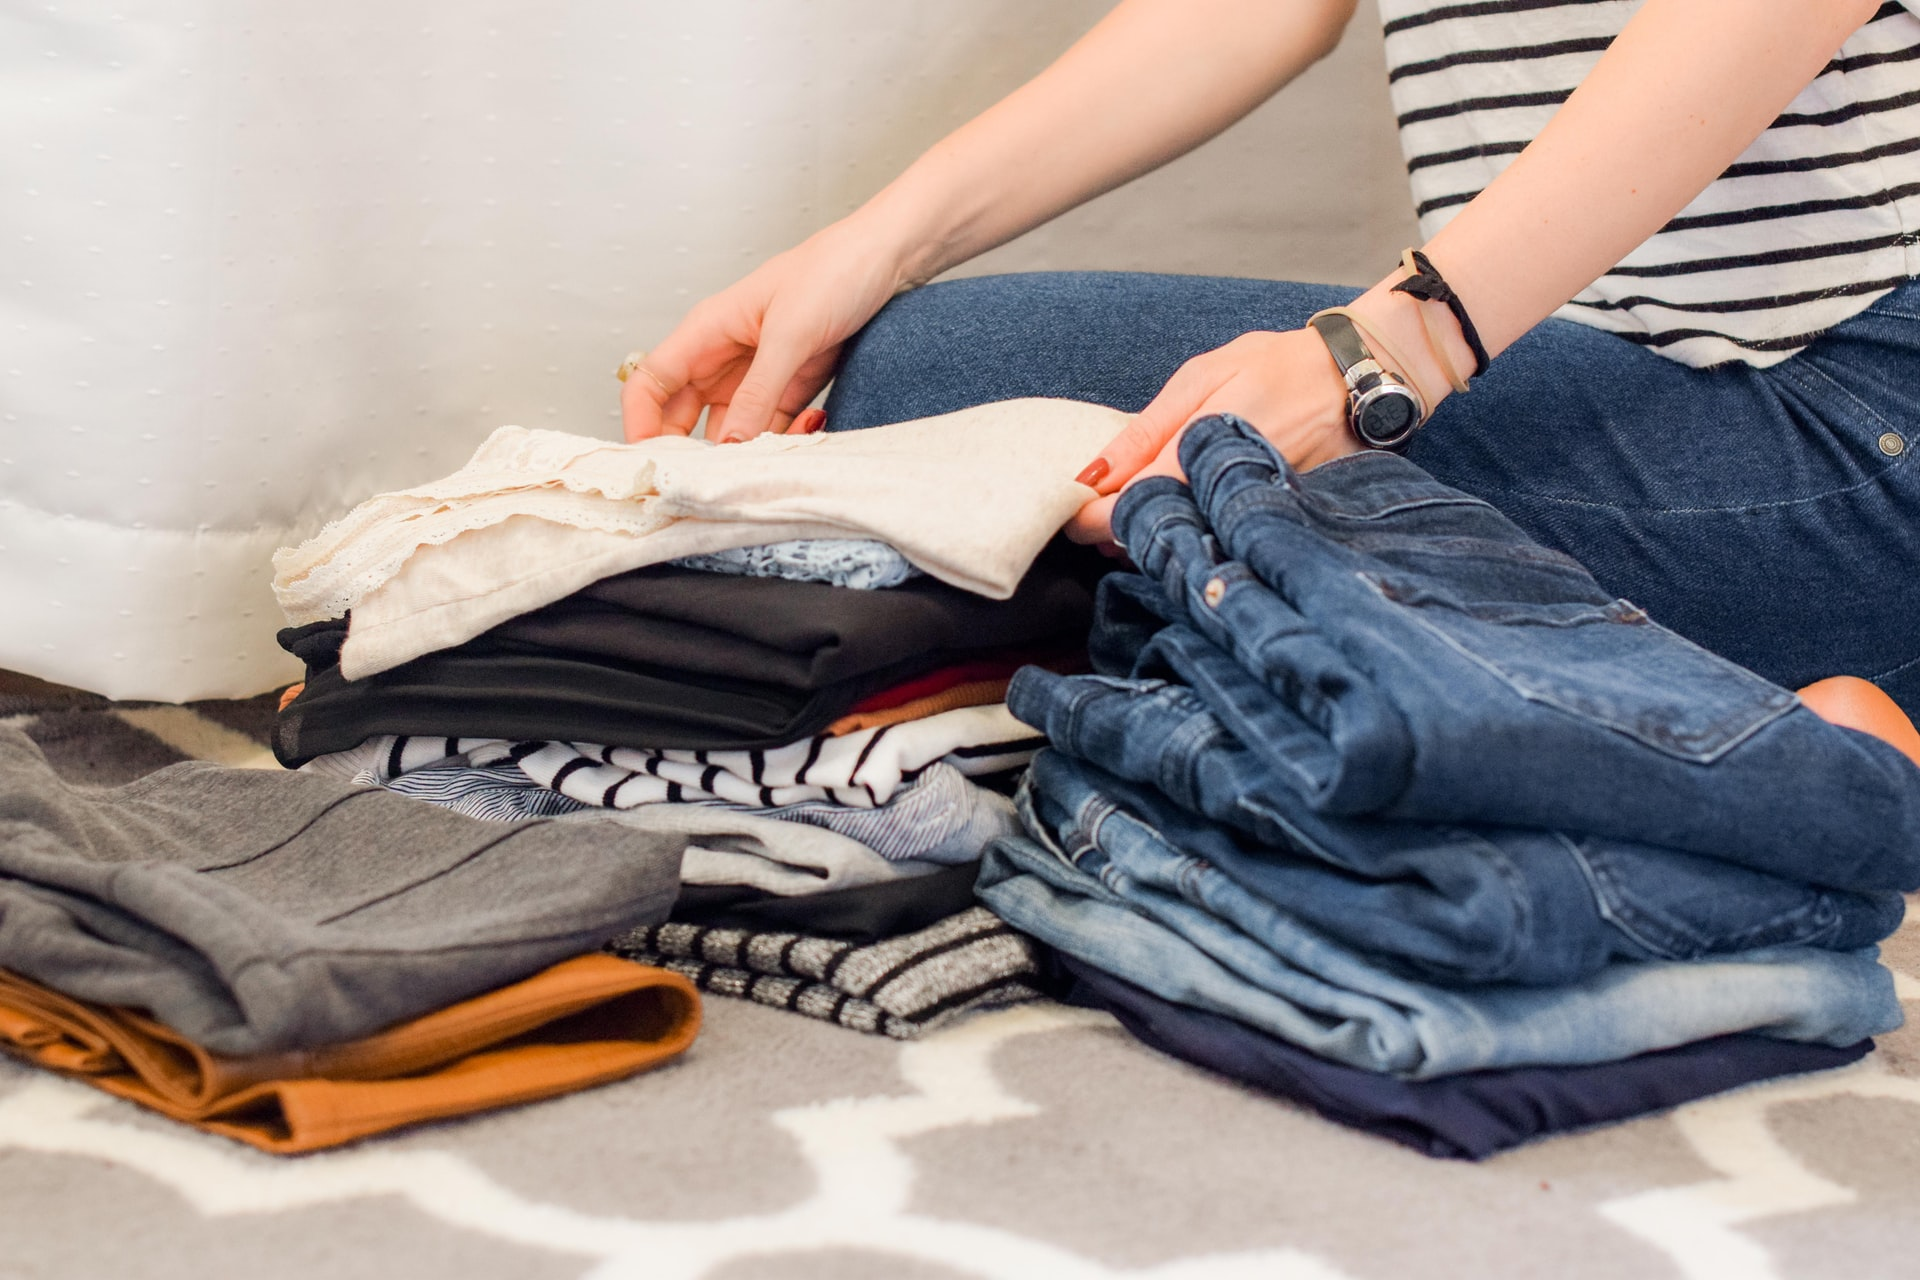 Decluttering with the 6 rules of KonMari method